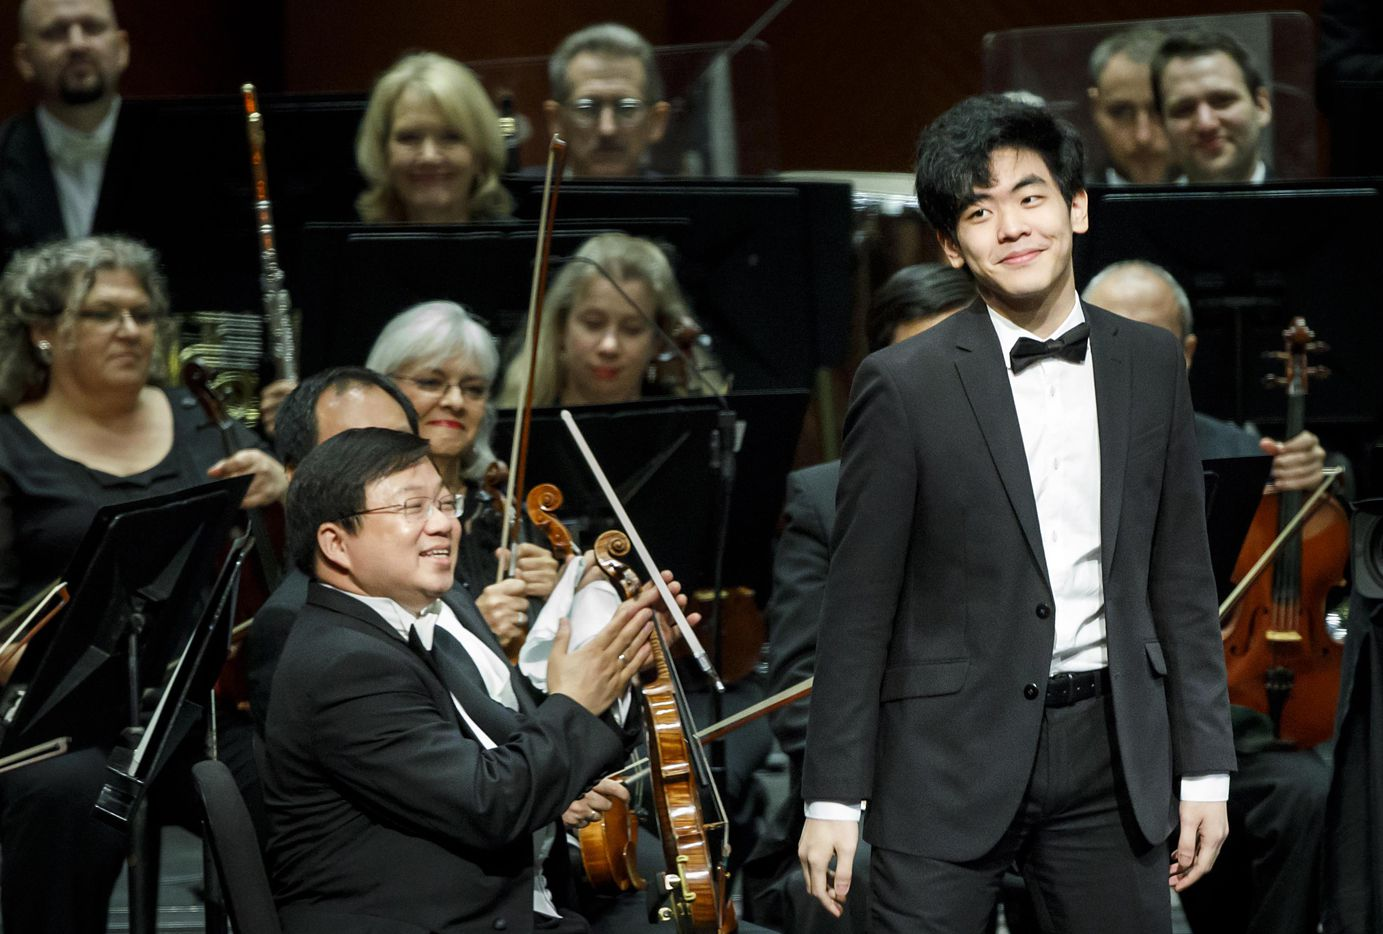 Members of the the Fort Worth Symphony Orchestra applaud Daniel Hsu of the USA as he takes the stage for the final performance of the Van Cliburn International Piano Competition at Bass Performance Hall on Saturday, June 10, 2017, in Fort Worth. (Smiley N. Pool/The Dallas Morning News)